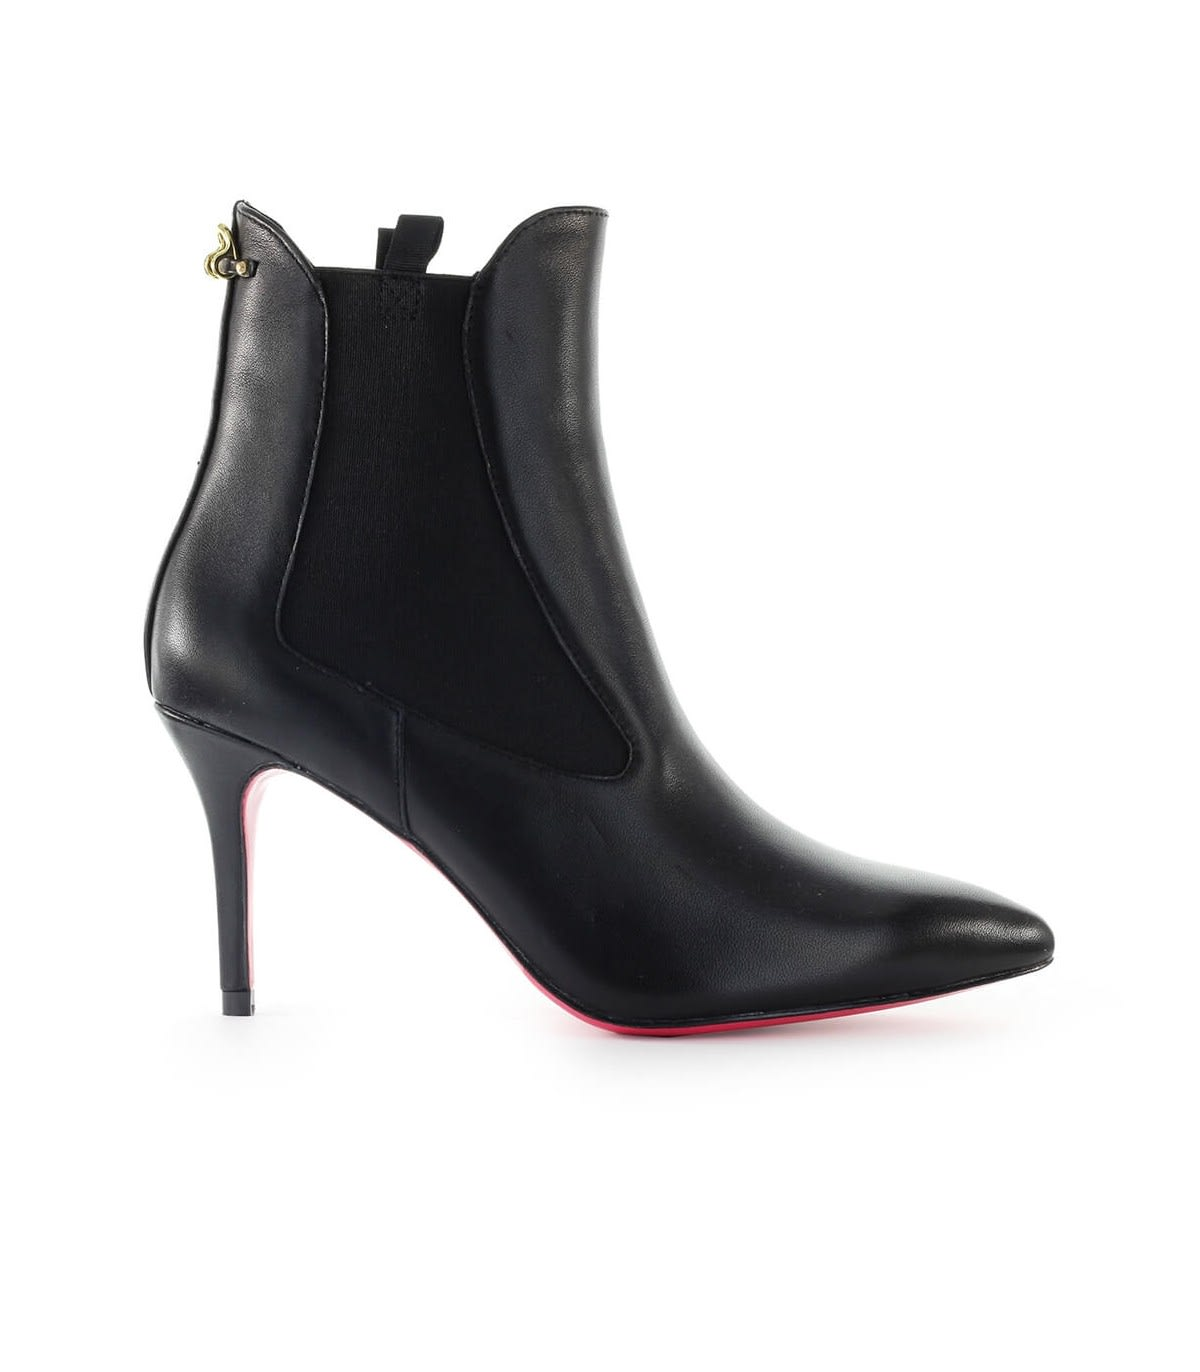 Pinko Bracciano Black Leather Ankle Boot